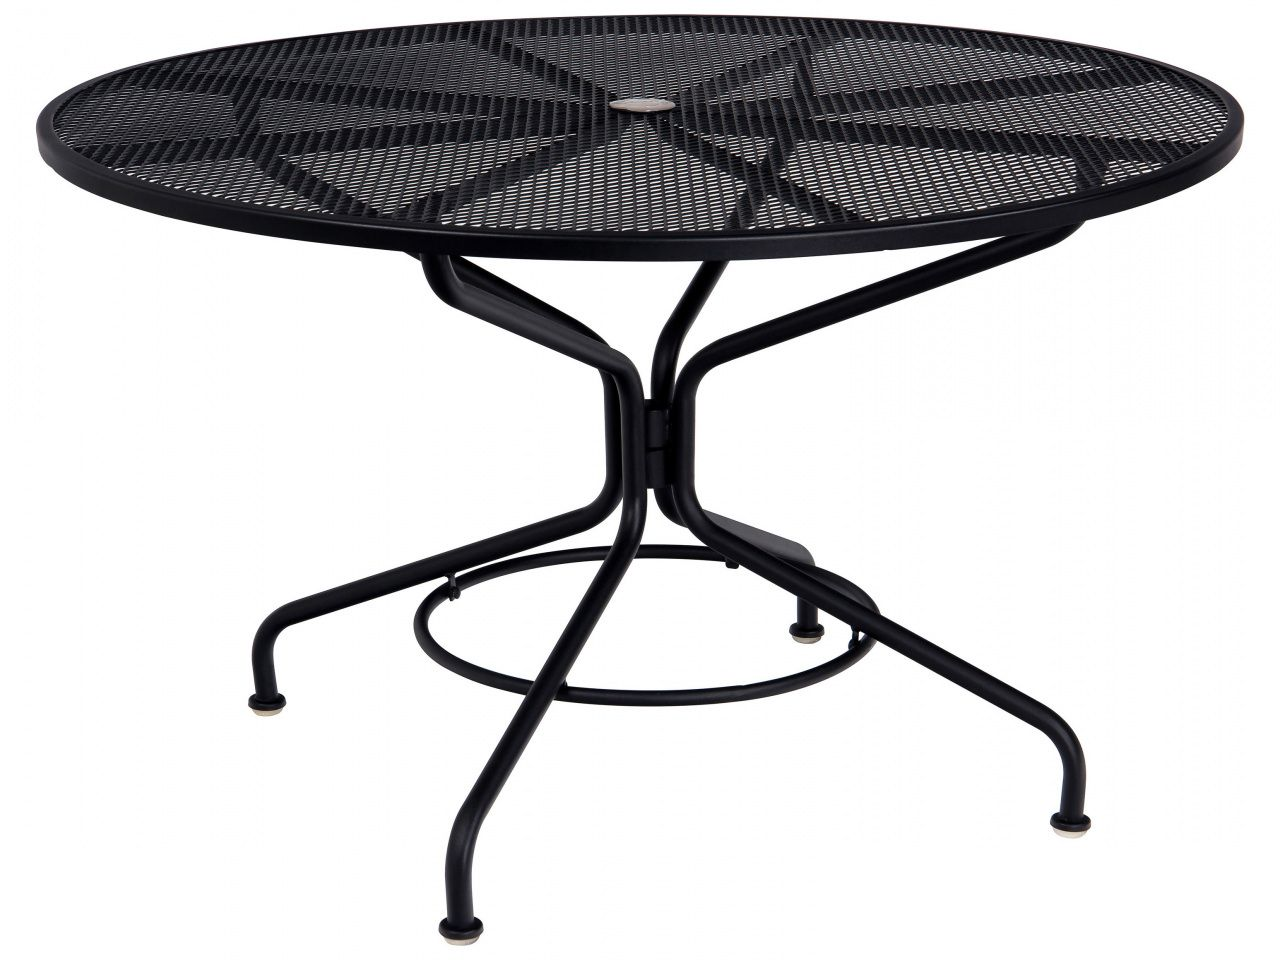 Inch Round Patio Table Modern Home Furniture Check More At - 60 inch round aluminum patio table